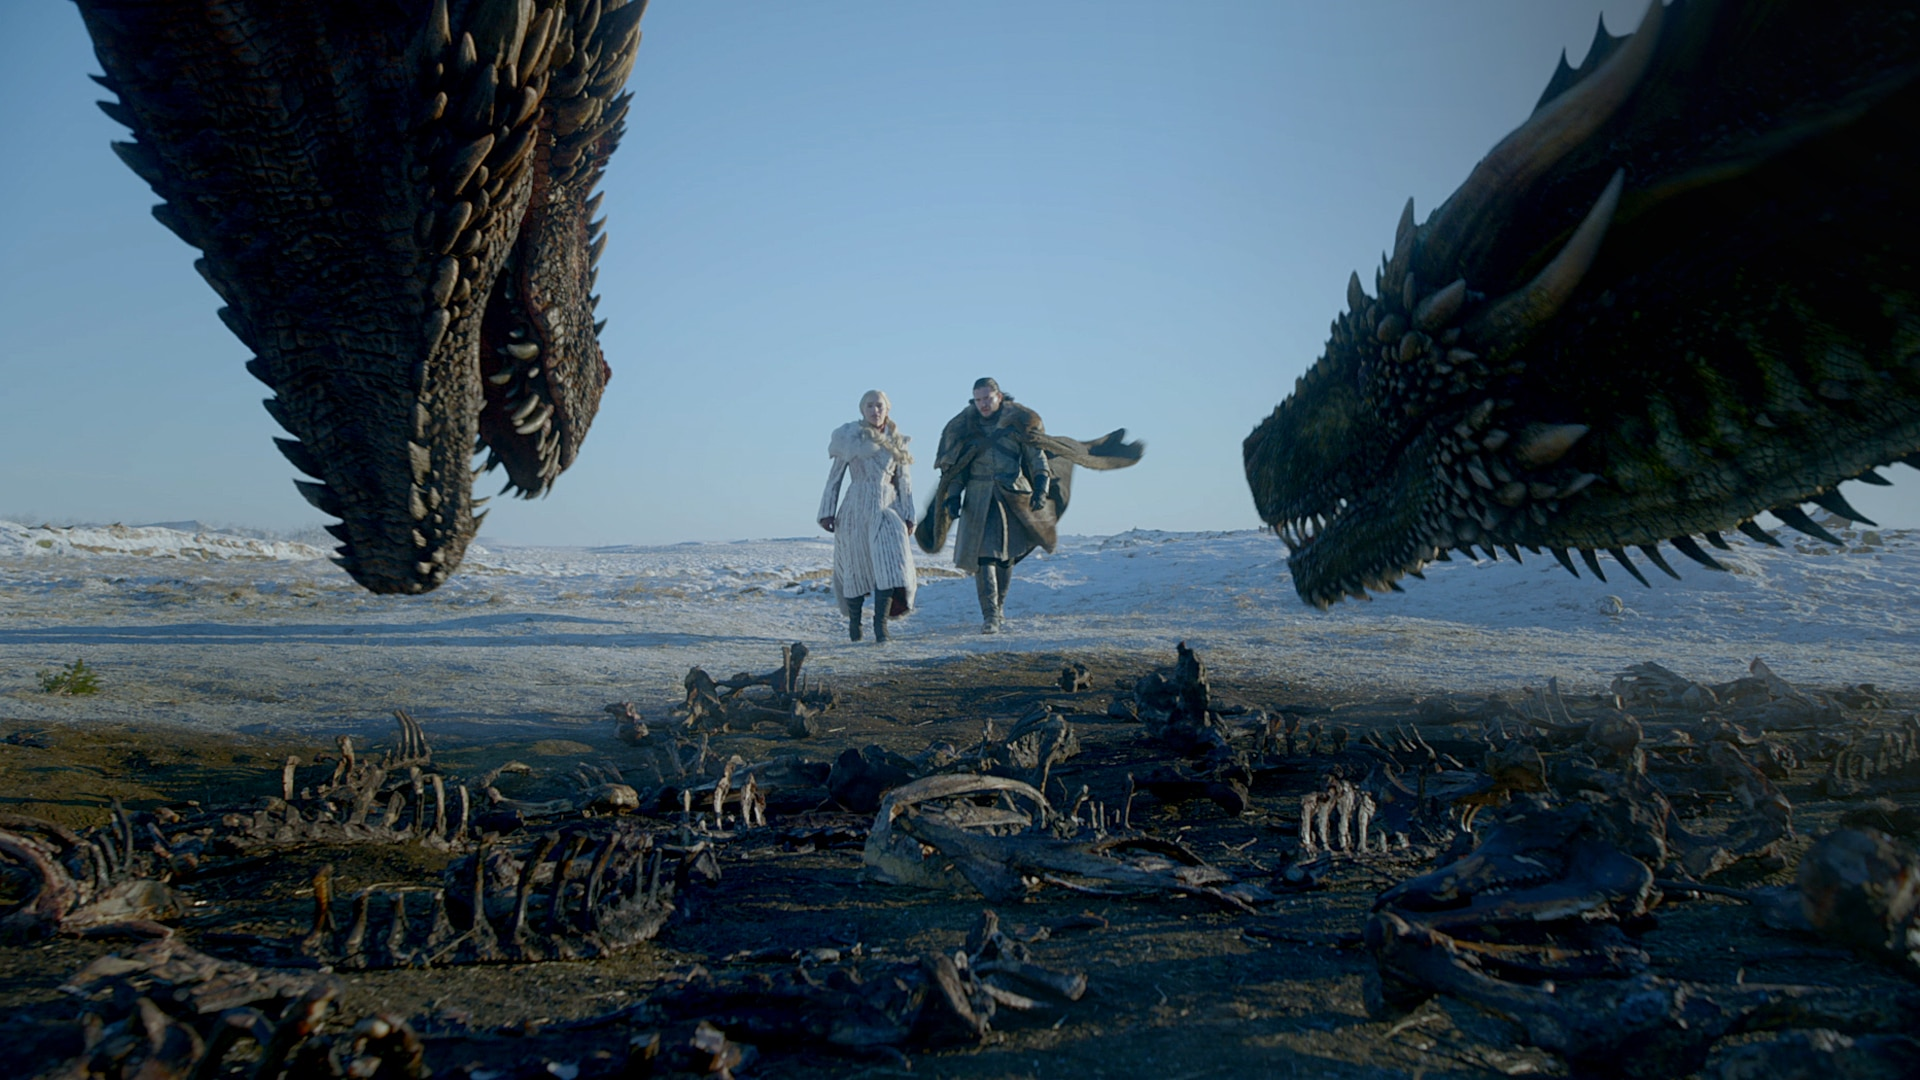 Game of Thrones: Where and How To Watch 1